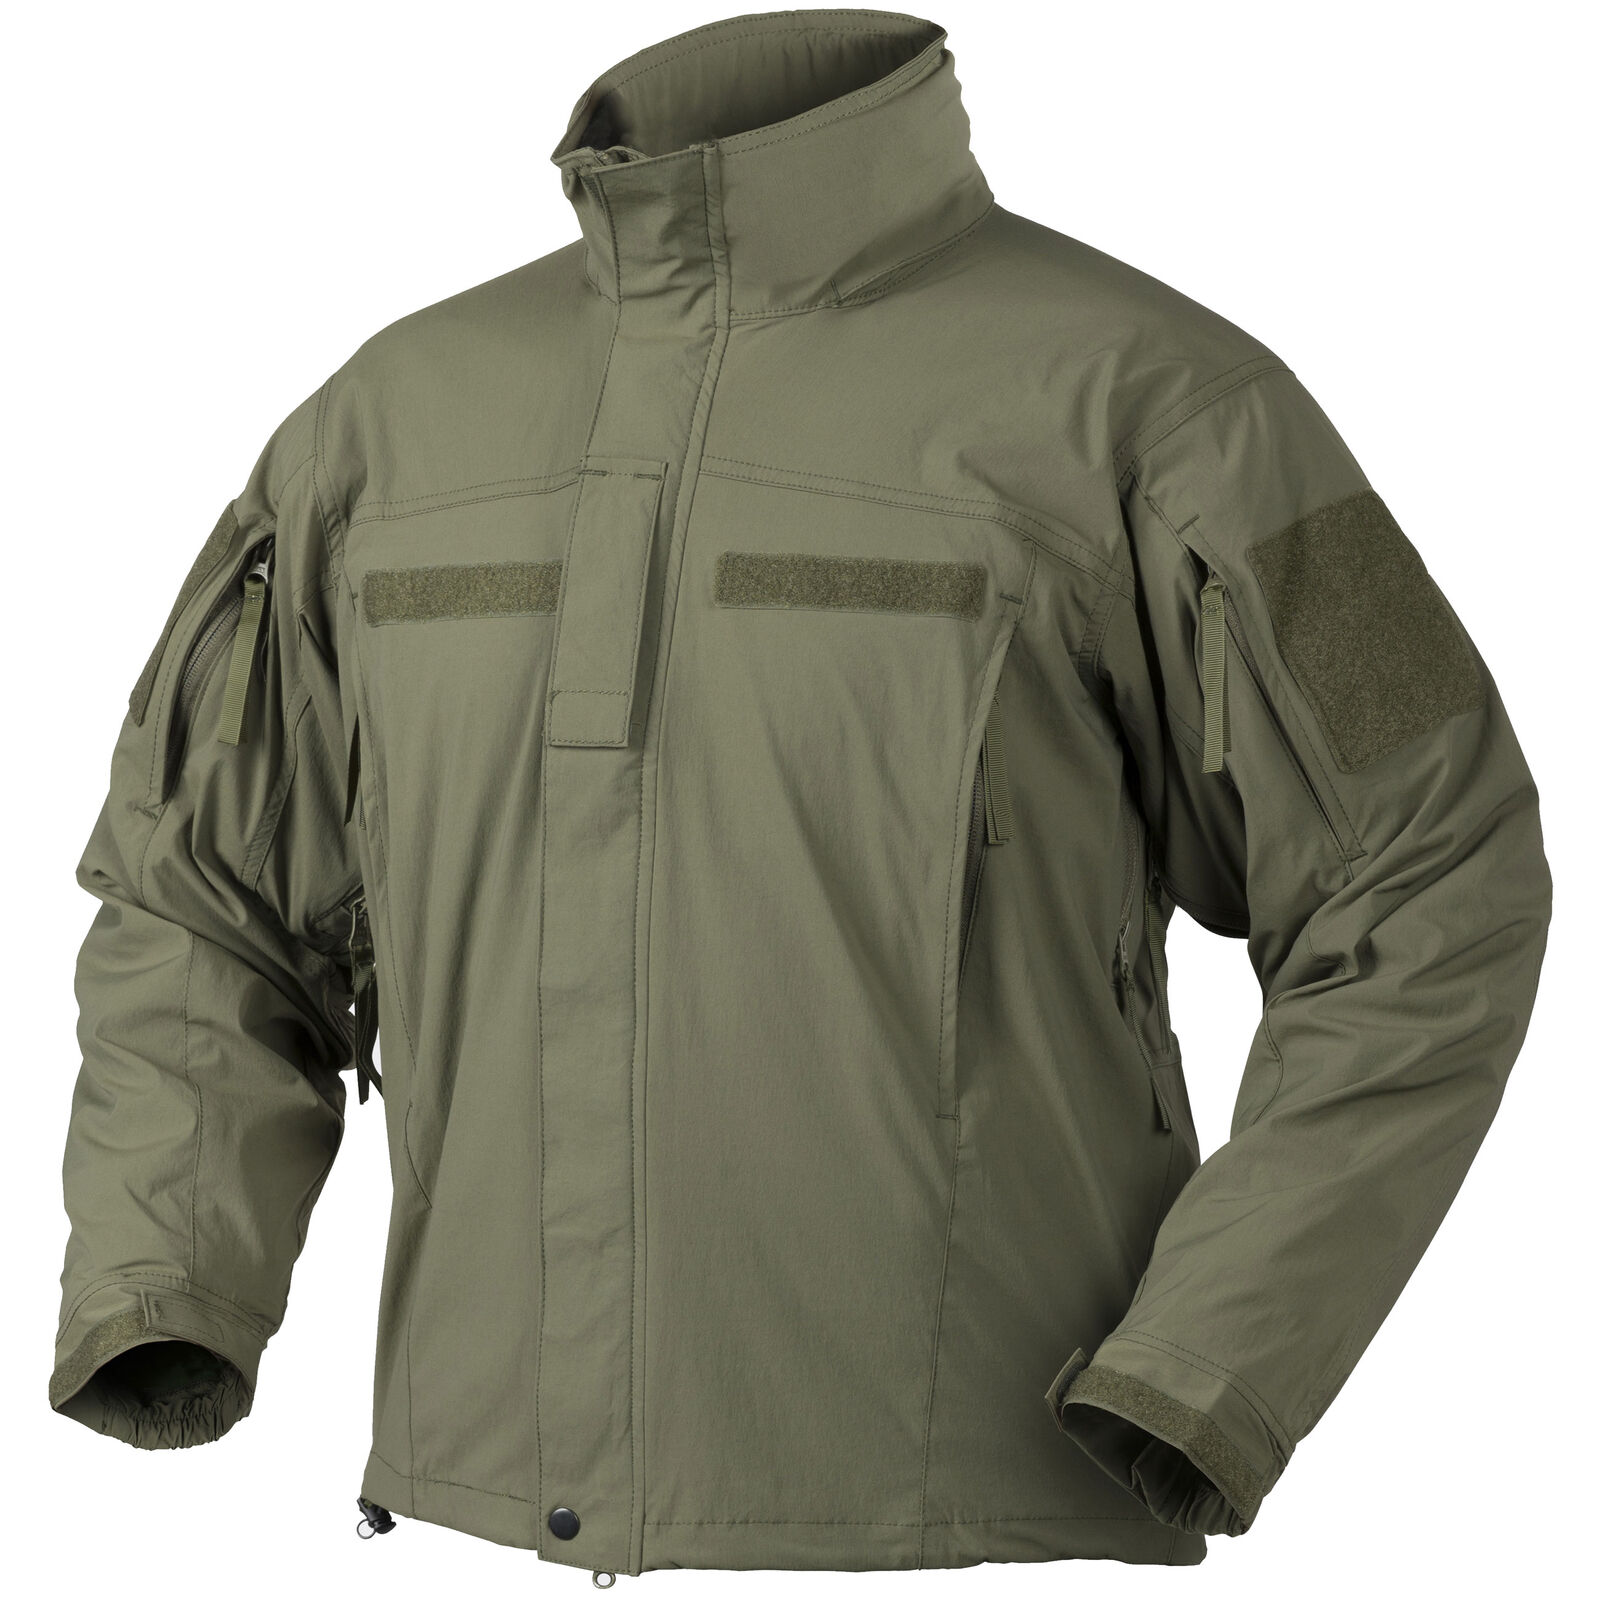 HELIKON tex Army Ecwcs level 5 ver.2 soft shell  Jacket chaqueta Cold Weather Olive  precios ultra bajos